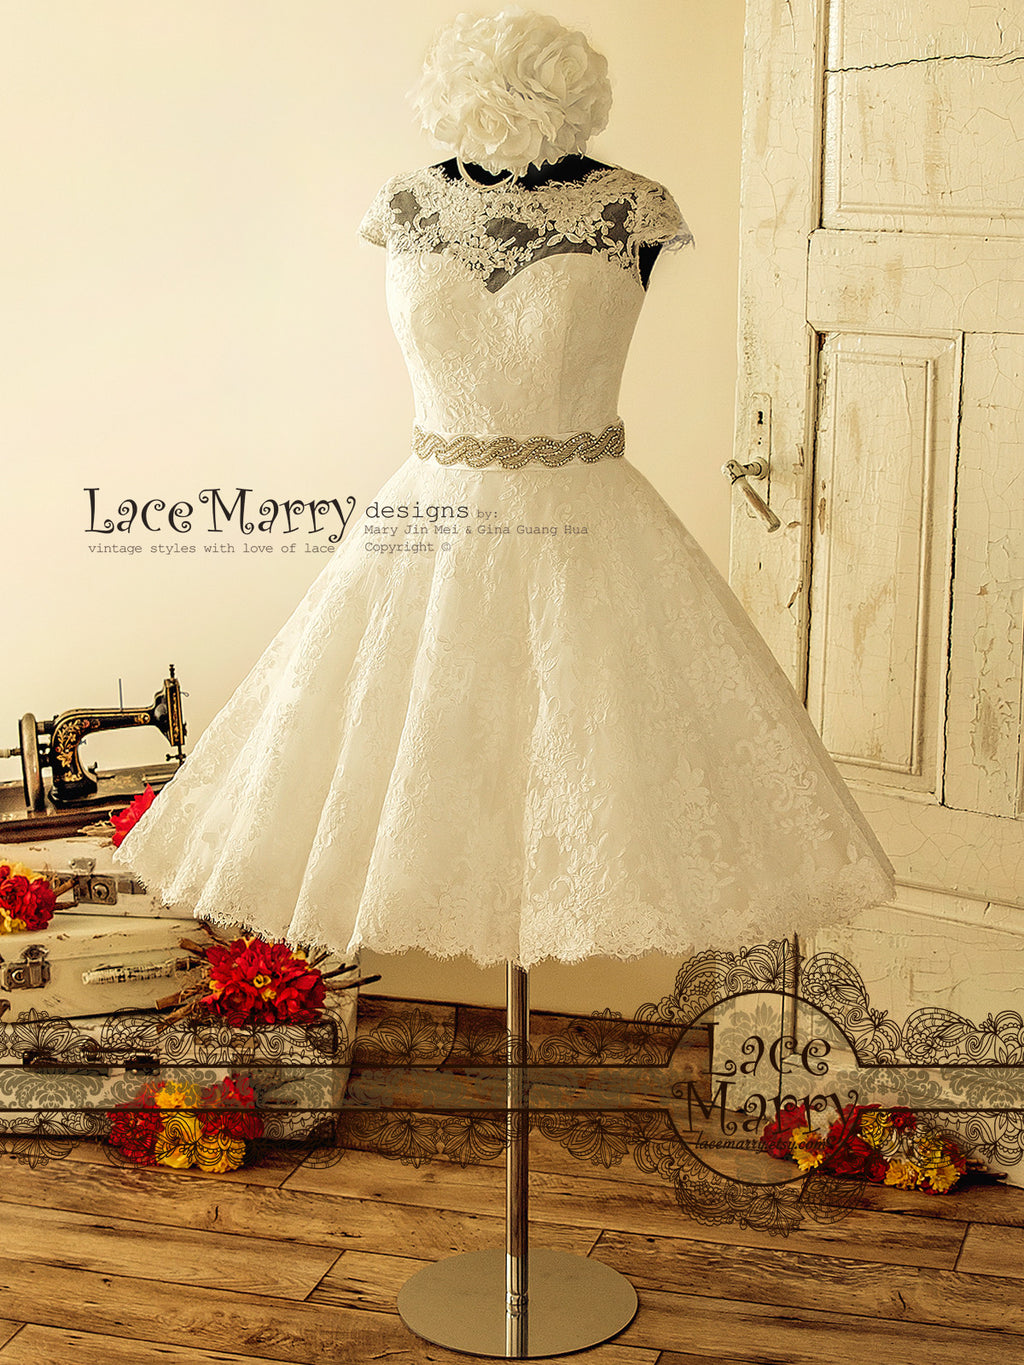 Lacemarry Handmade Wedding Dresses With Love Of Lace